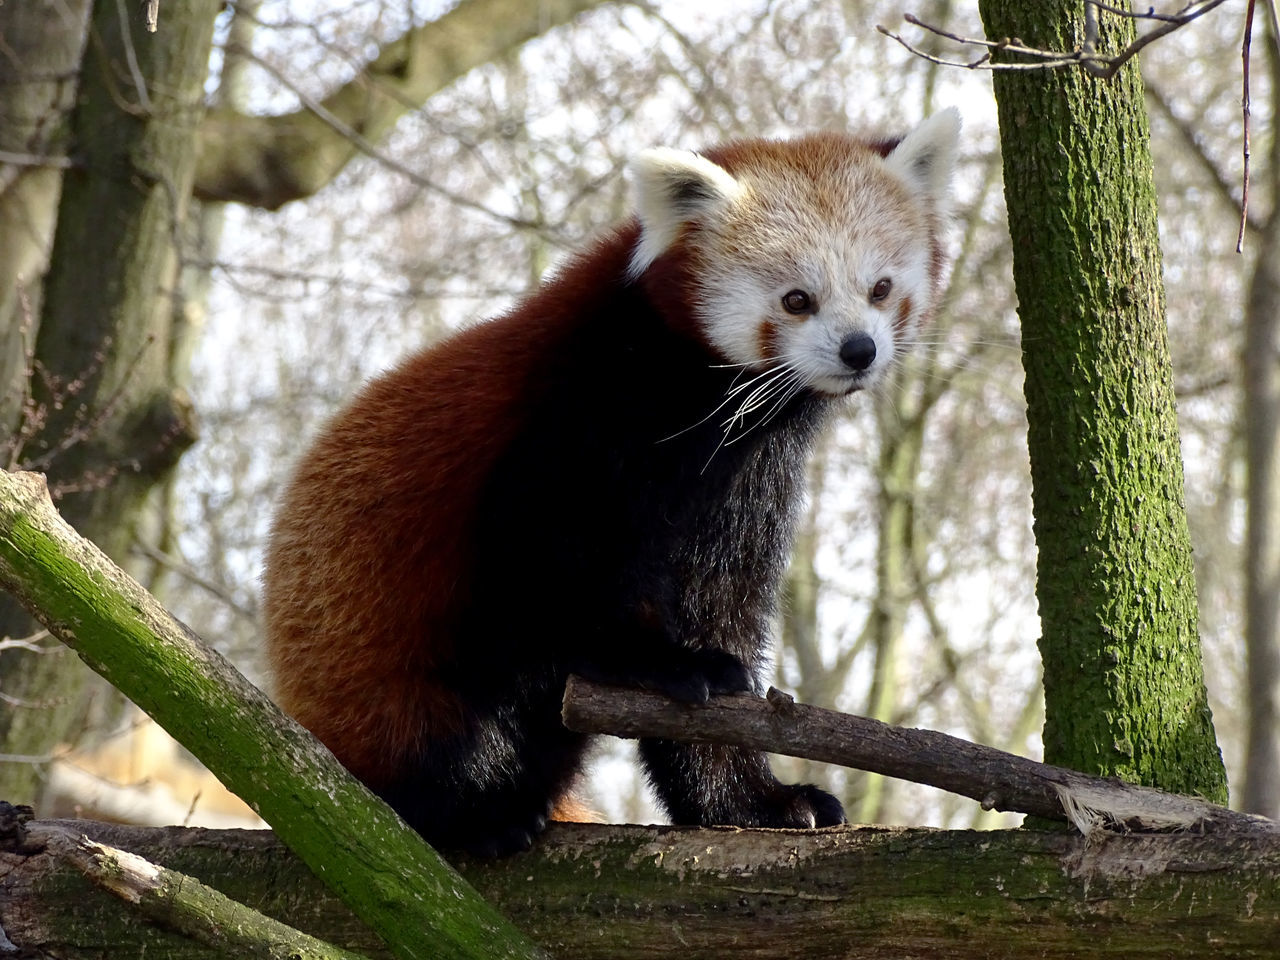 Animal Themes One Animal Red Panda Nature Animal Animal Photography Animal_collection Animal Portrait From My Point Of View EyeEm Gallery EyeEm Best Shots